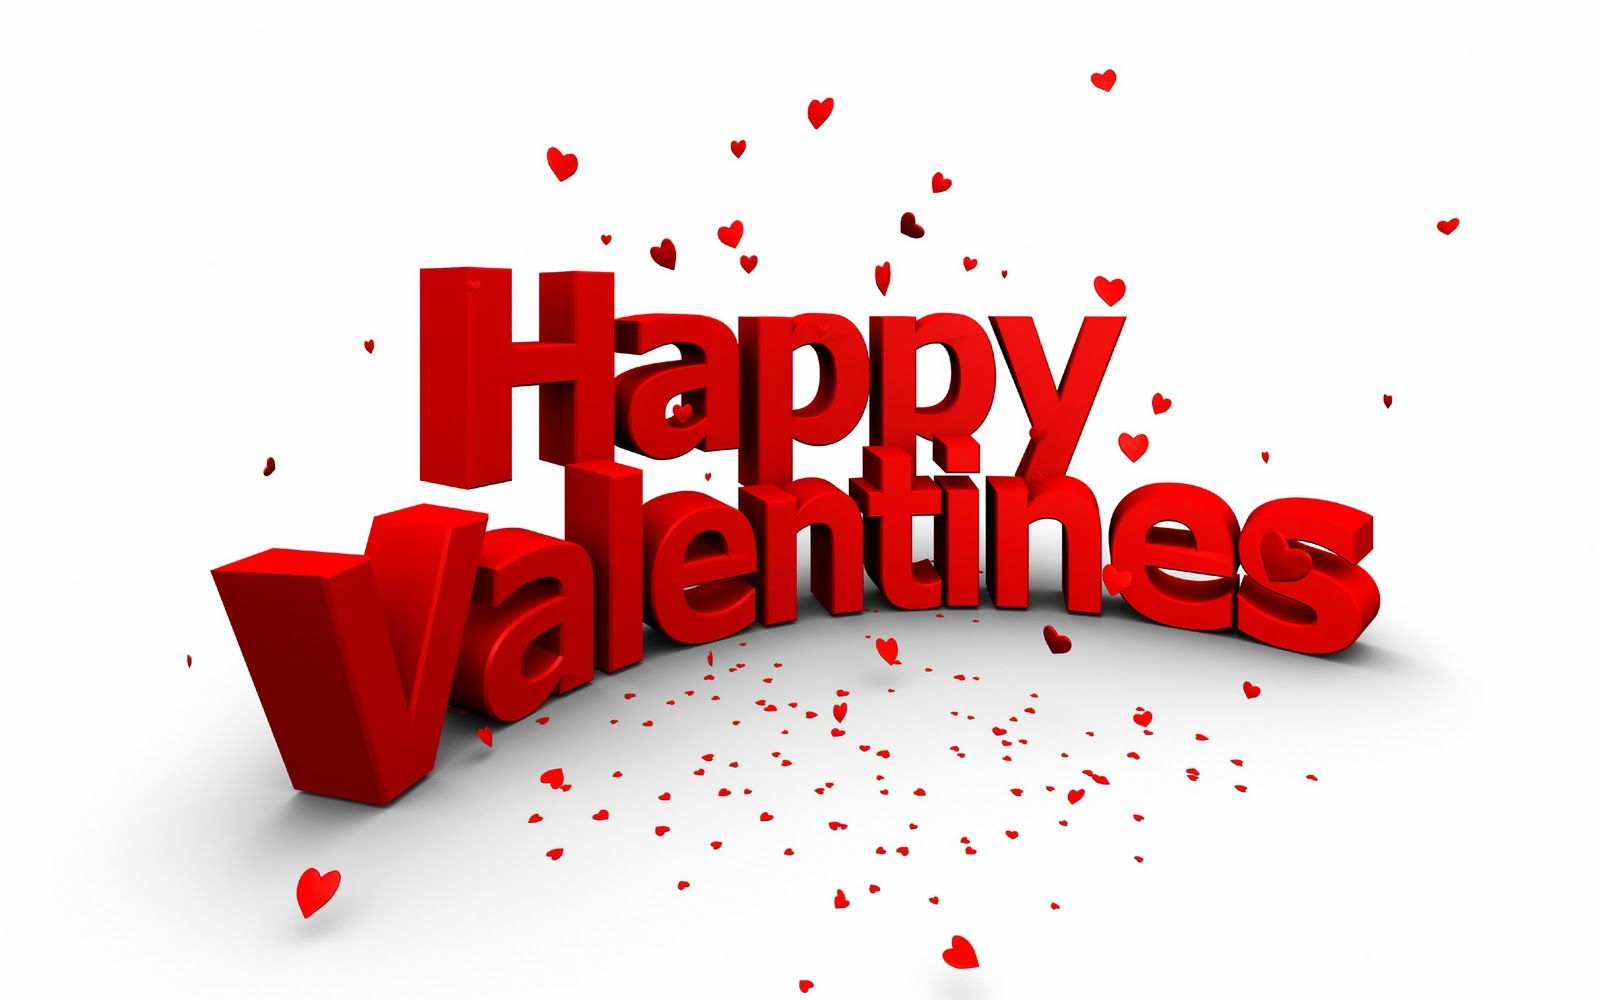 Valentines greetings mms messages vodafone valentines day 2013 valentines greetings mms messages vodafone valentines day 2013 info wallpapers gifts greetings cards kristyandbryce Gallery